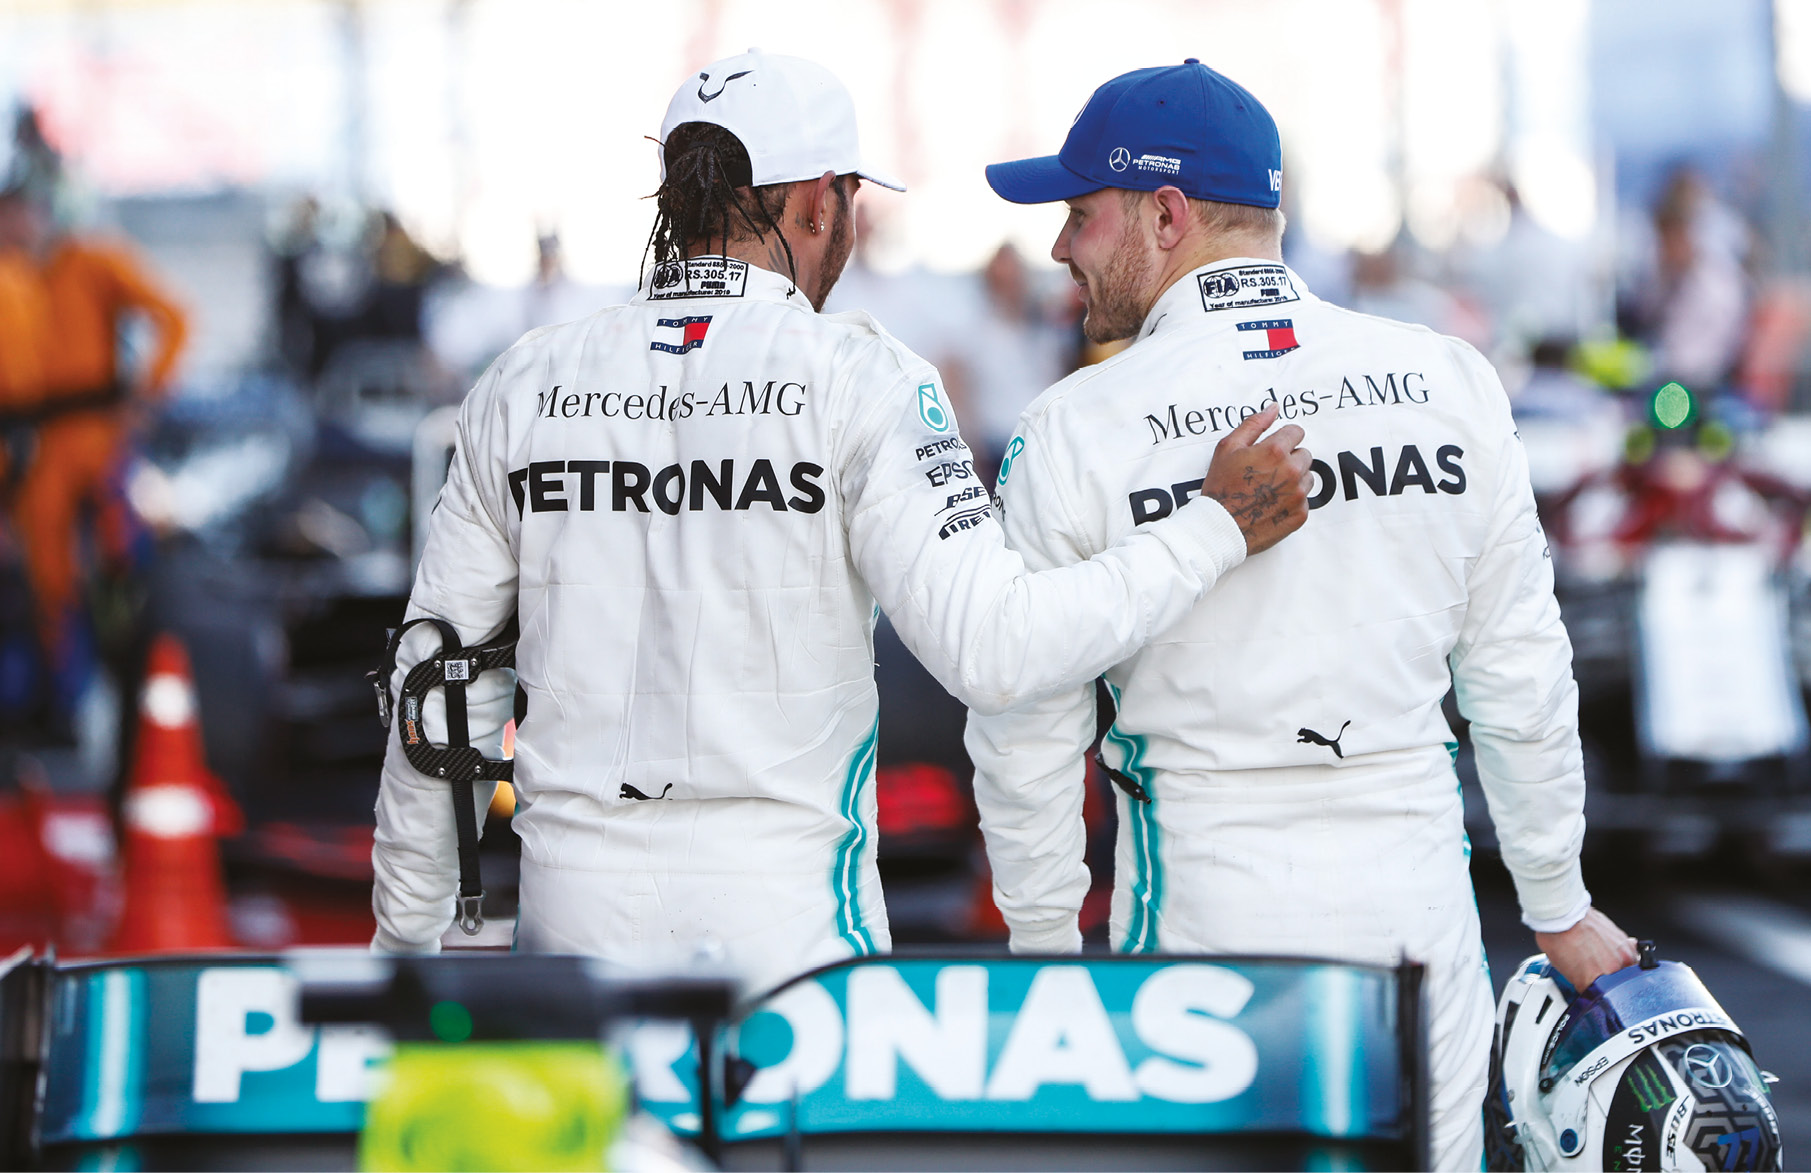 While things started out in Bottas' favour, Hamilton has turned the table as the season has gone on